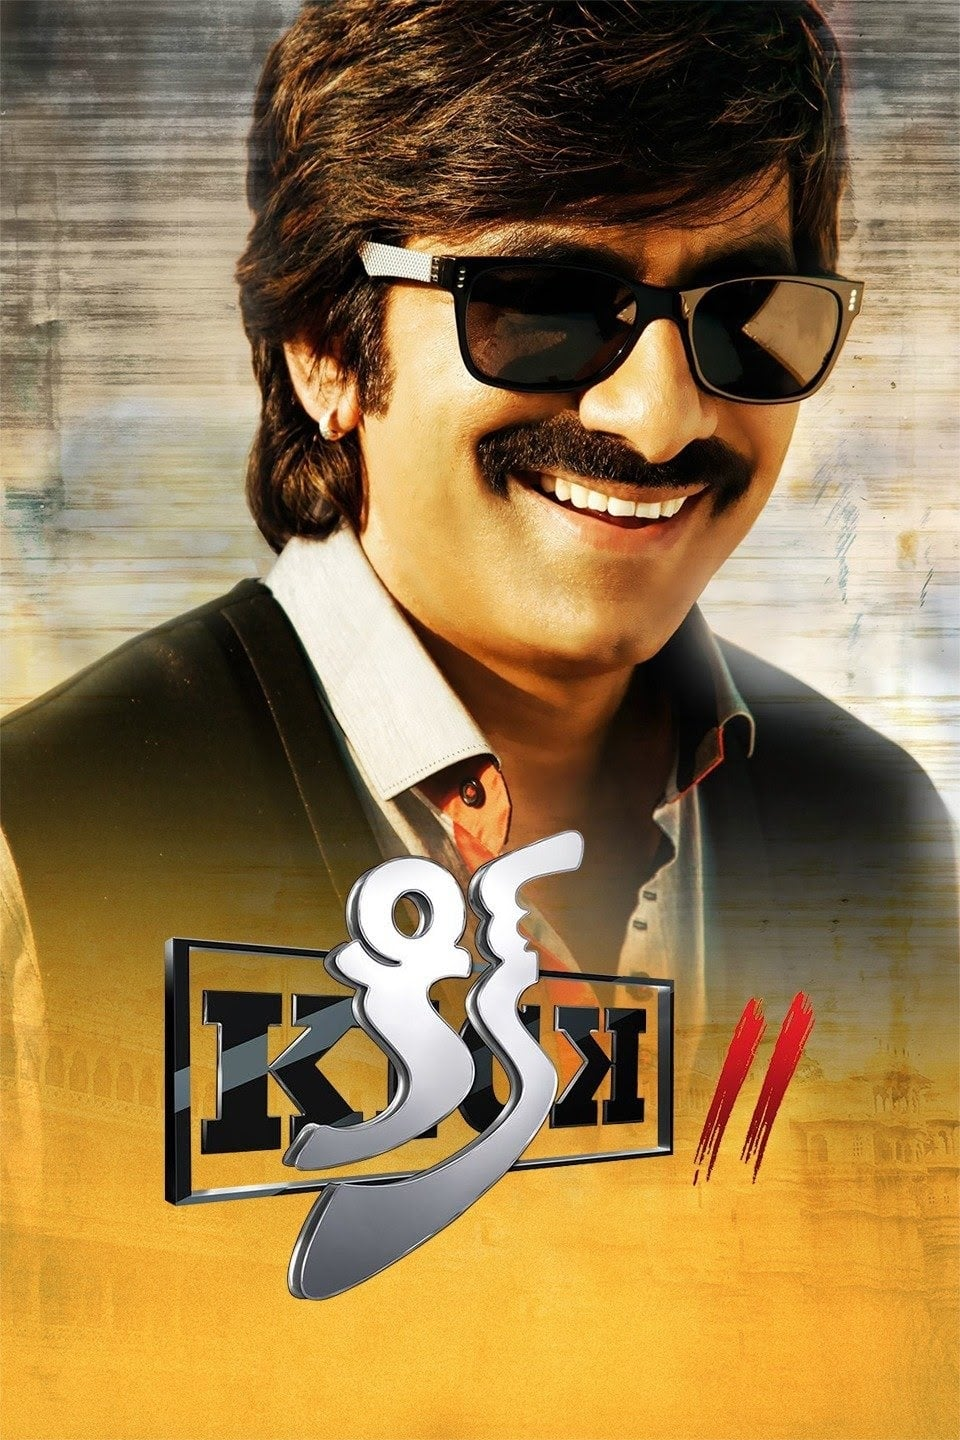 Kick 2 Movie Streaming Online Watch on Hungama